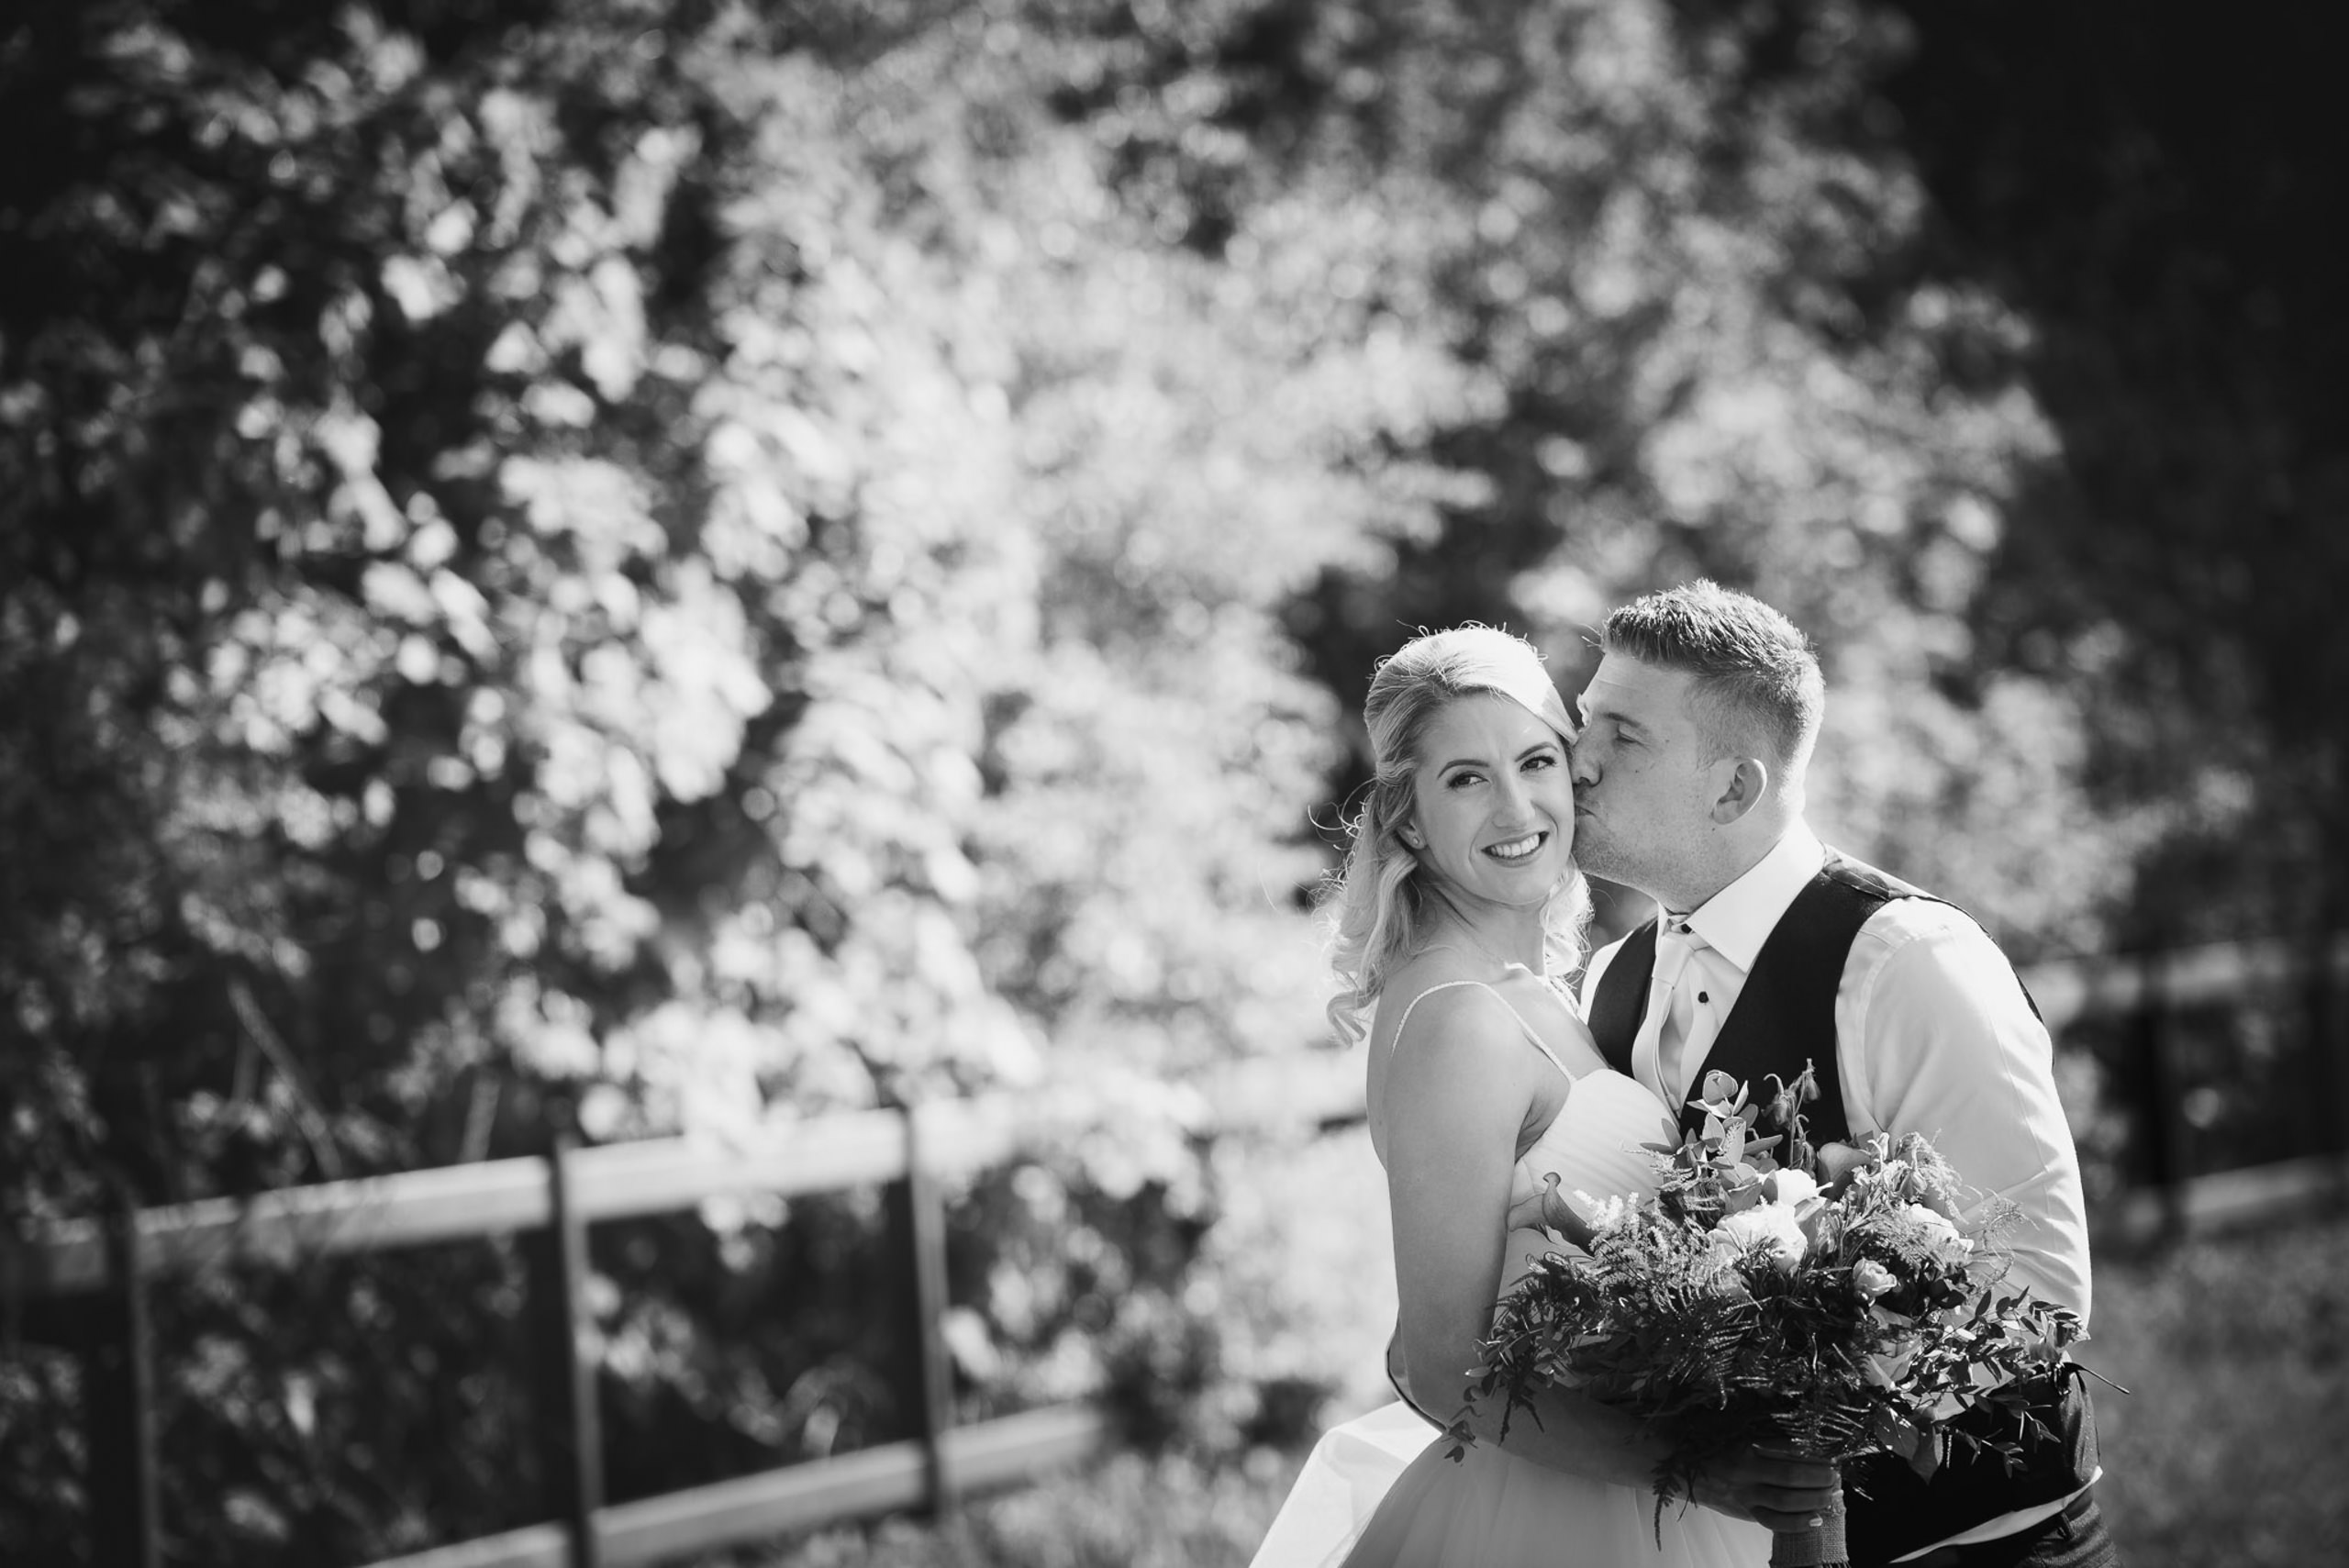 Wedding Photography At The Old Barn 3